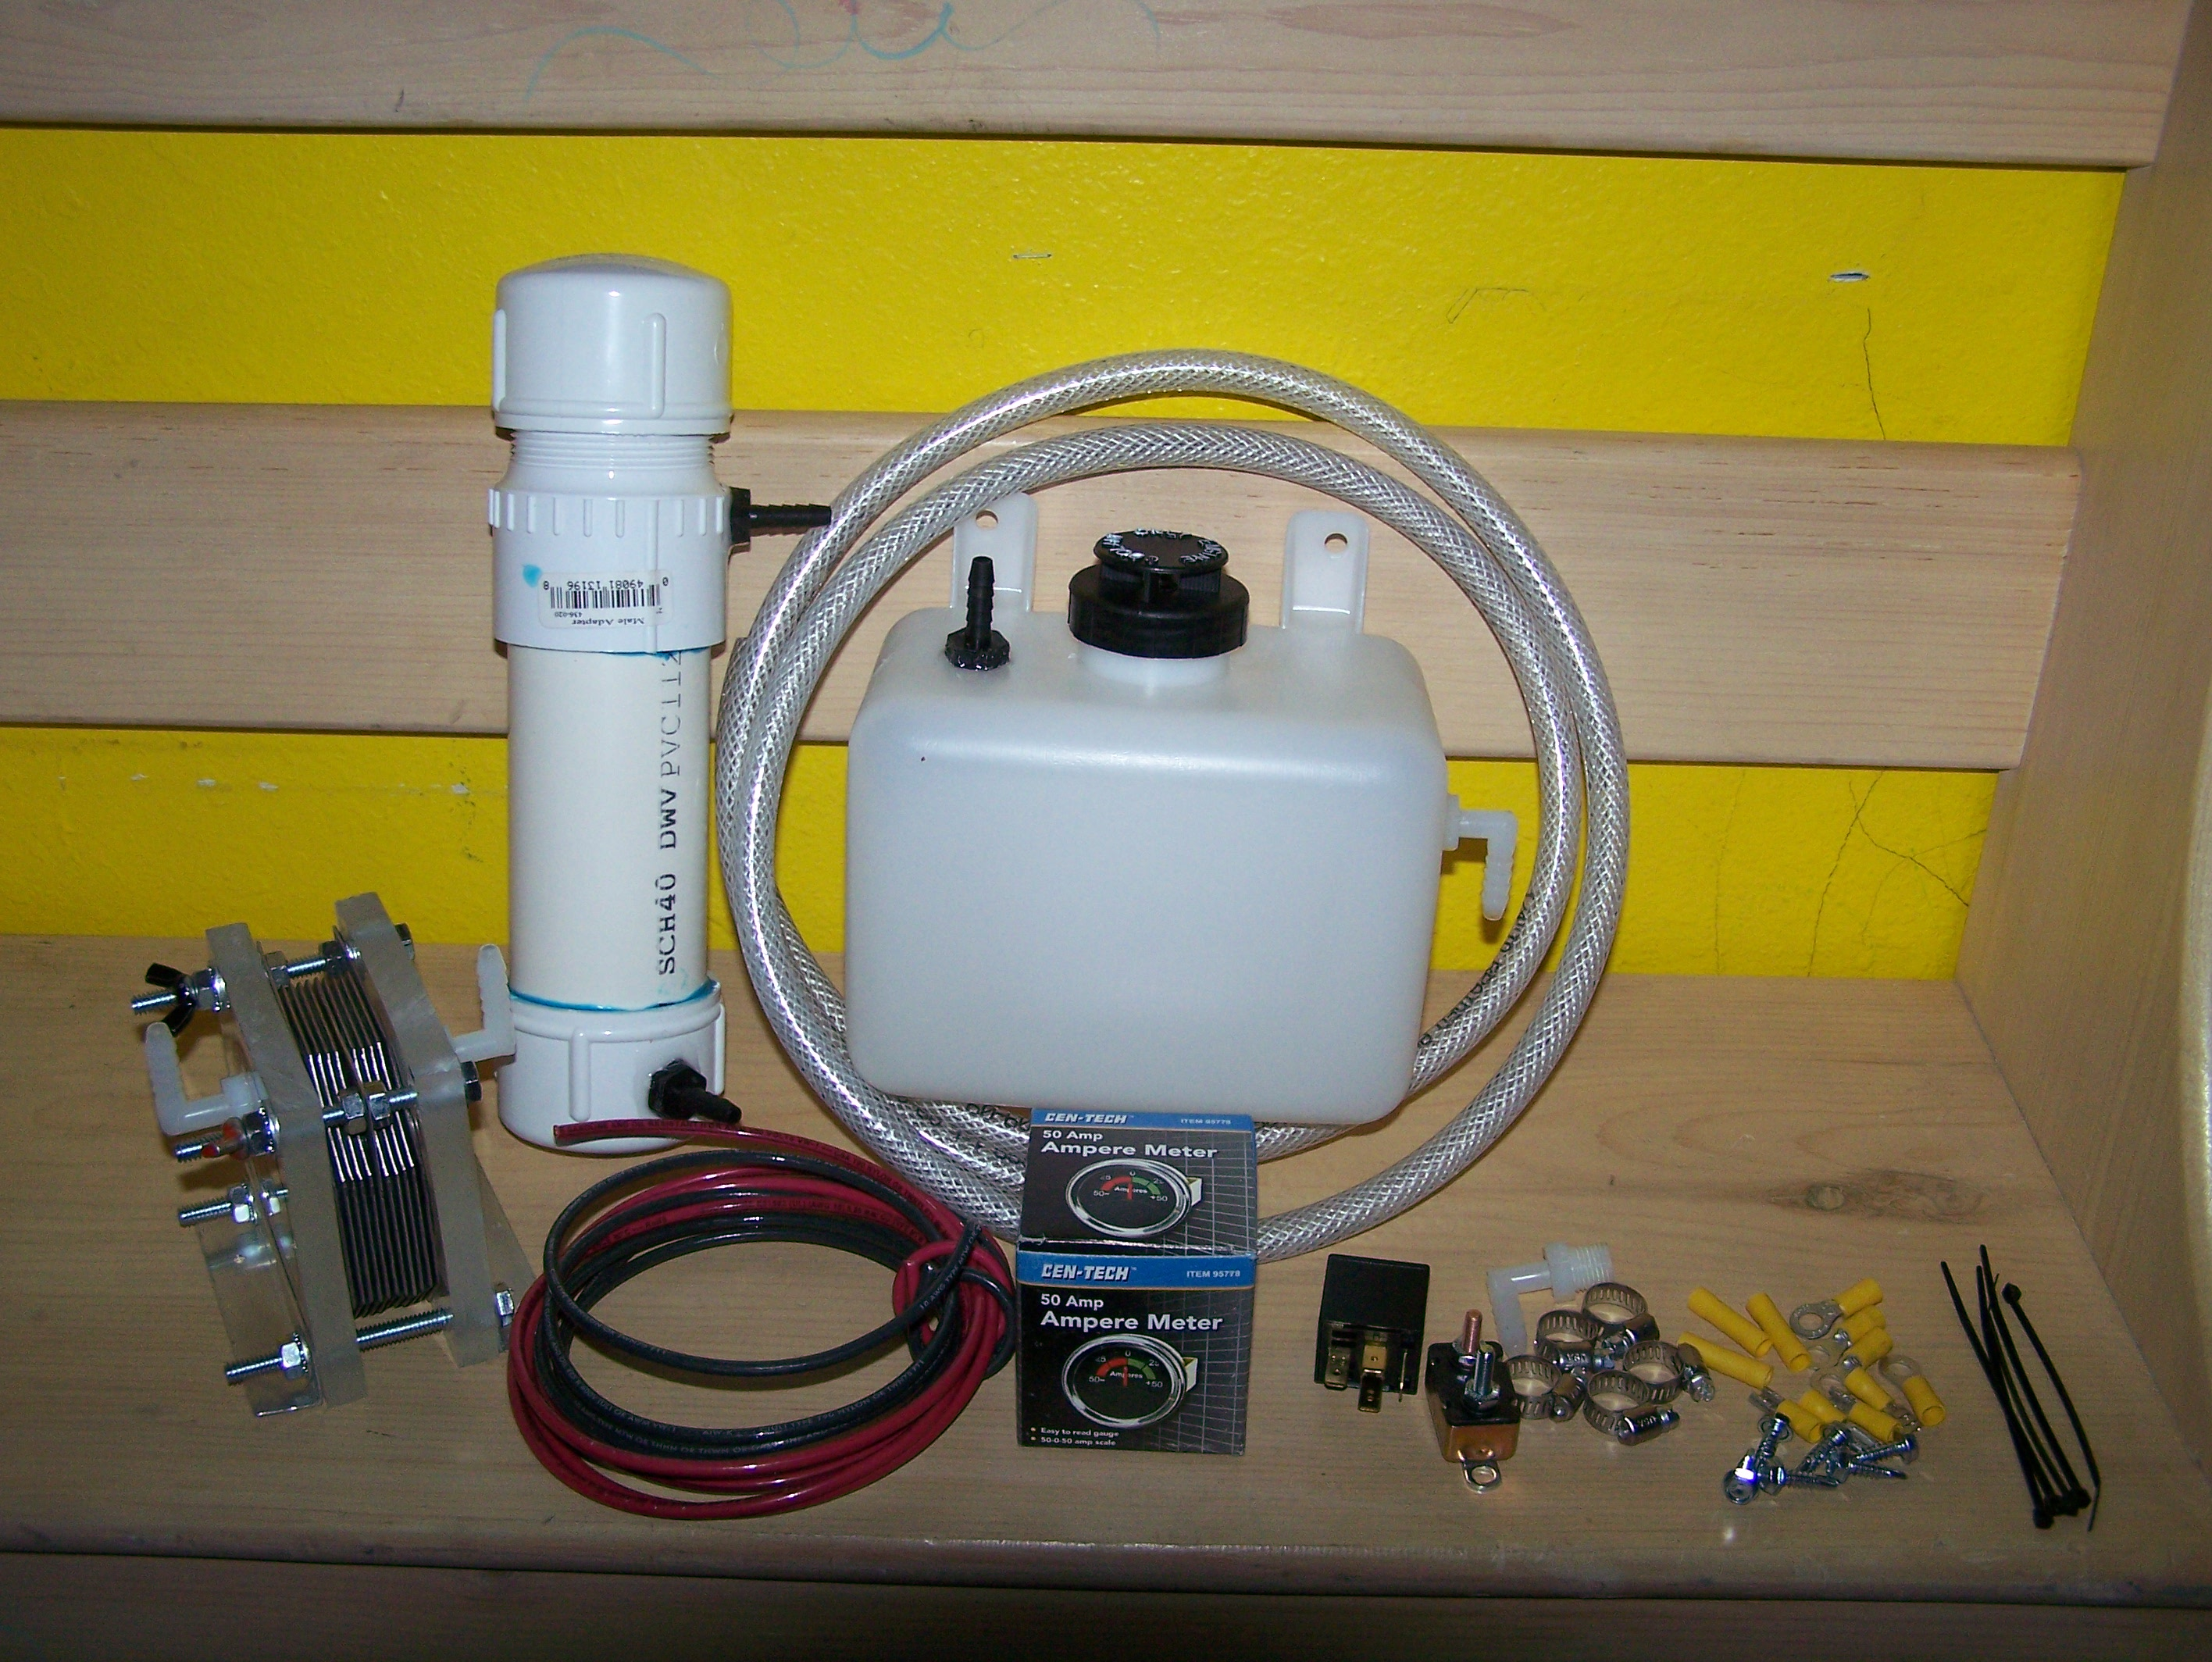 ... USA hho dry cell kits. HHO World wide wholesale dry cell generators